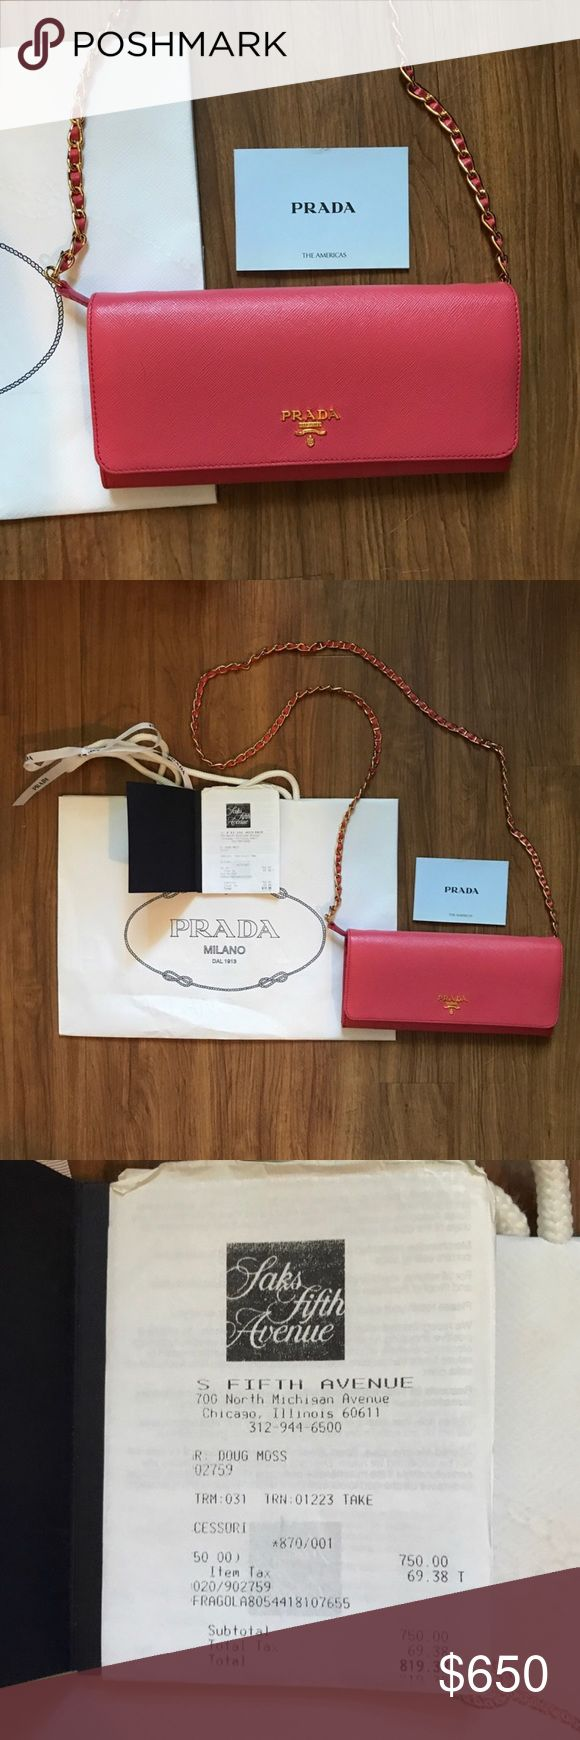 Authentic Prada Saffiano crossbody bag Purchased at Saks in Chicago in 2014. Receipt will come with it and everything pictured. This was relisted due to someone trying to scam me with a trade. I will not trade this bag now!! Will do a lower price via 🅿🅿. Prada Bags Crossbody Bags